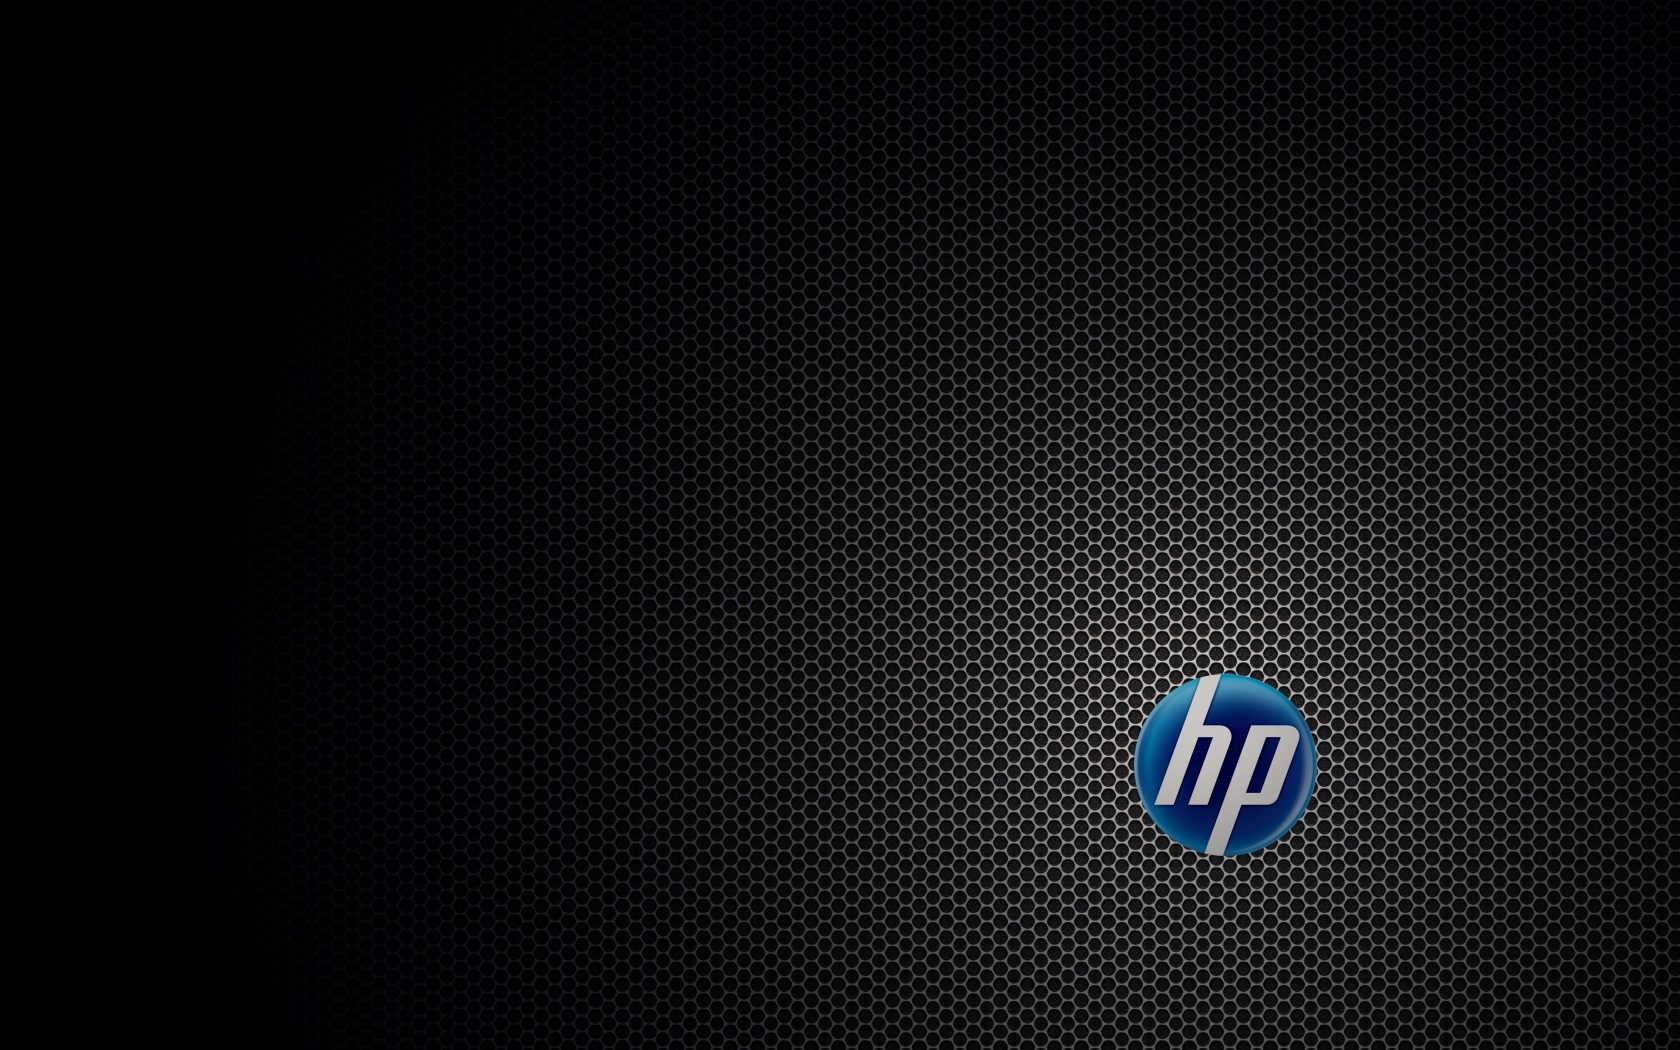 HP Wallpaper